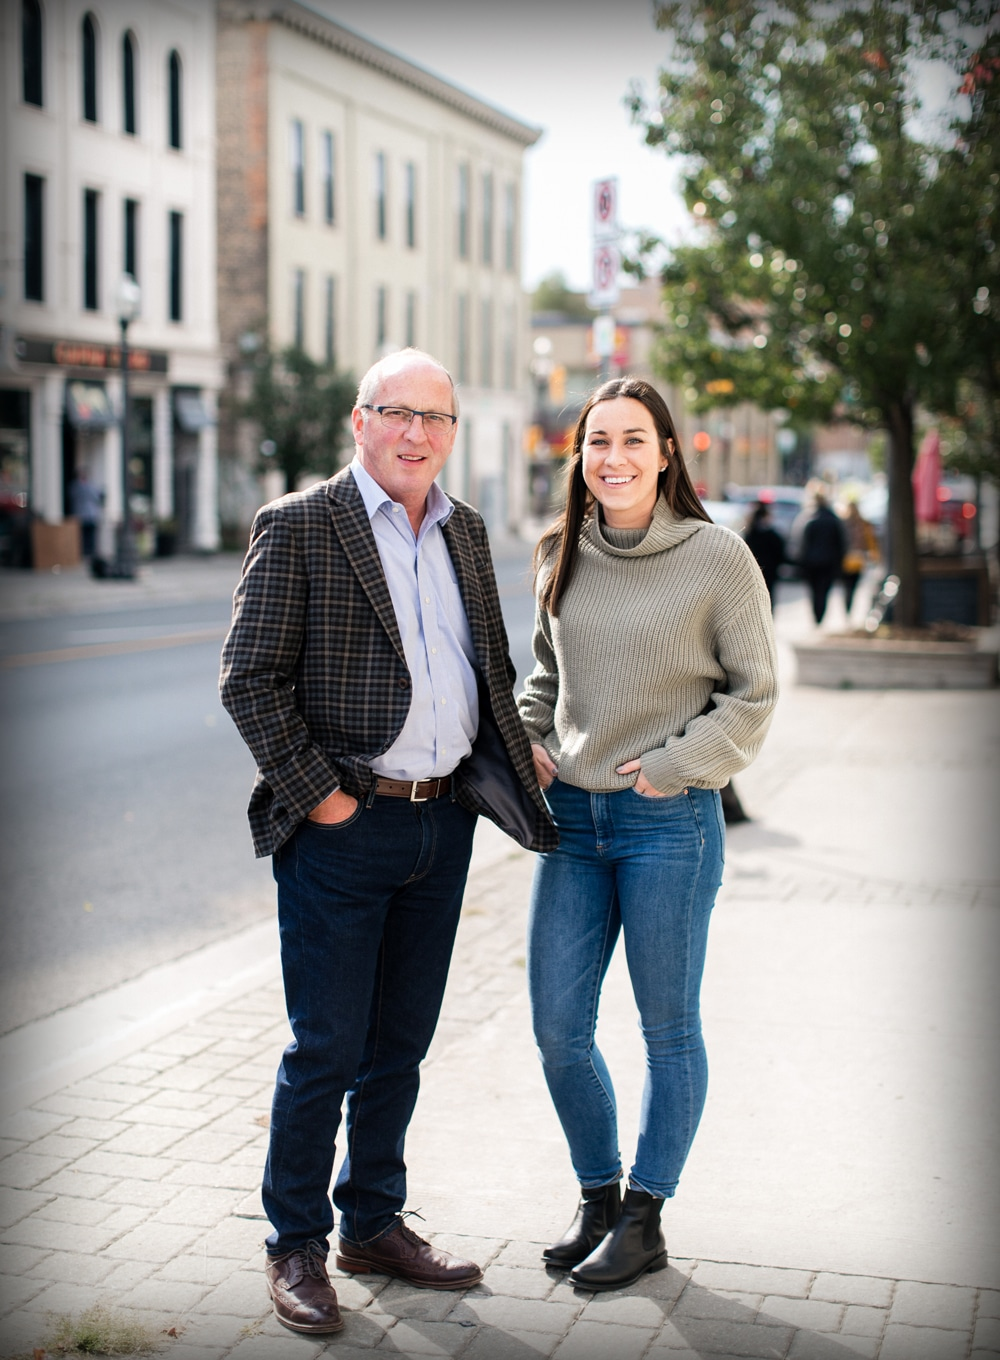 Ken and Laura Barrick standing with smiles in downtown Peterborough, Ontario on Hunter Street East.